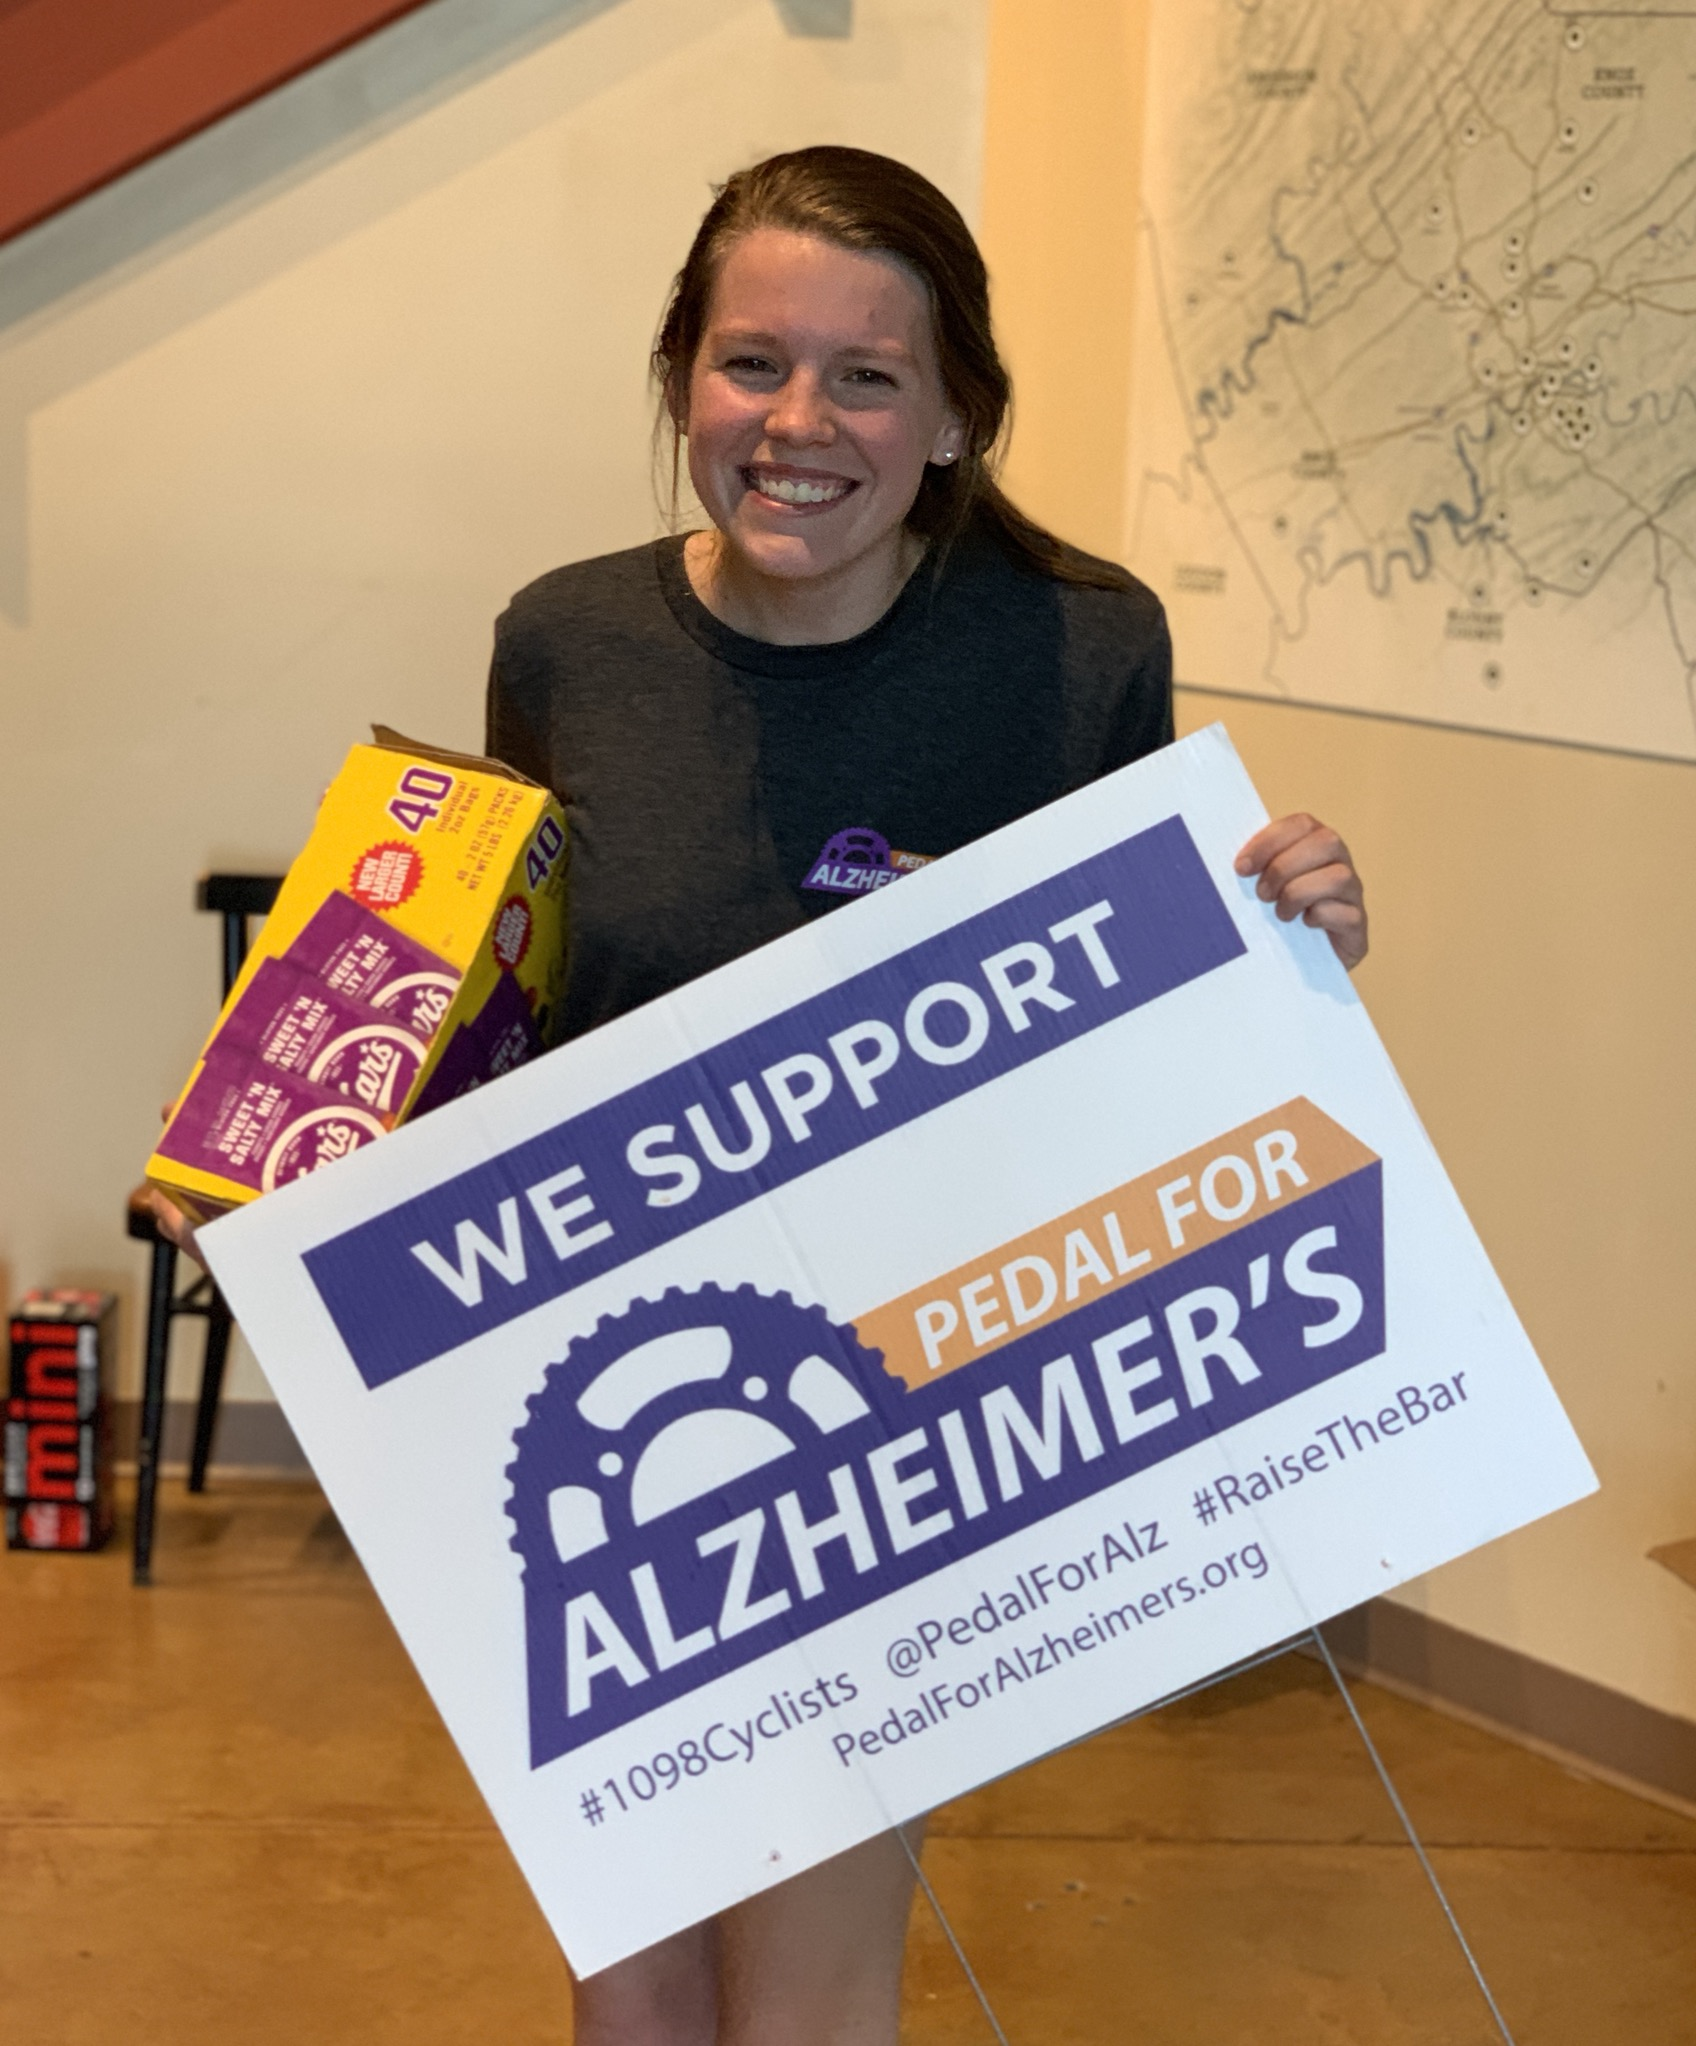 Signs, Banners and Magnets for Pedal For Alzheimer's